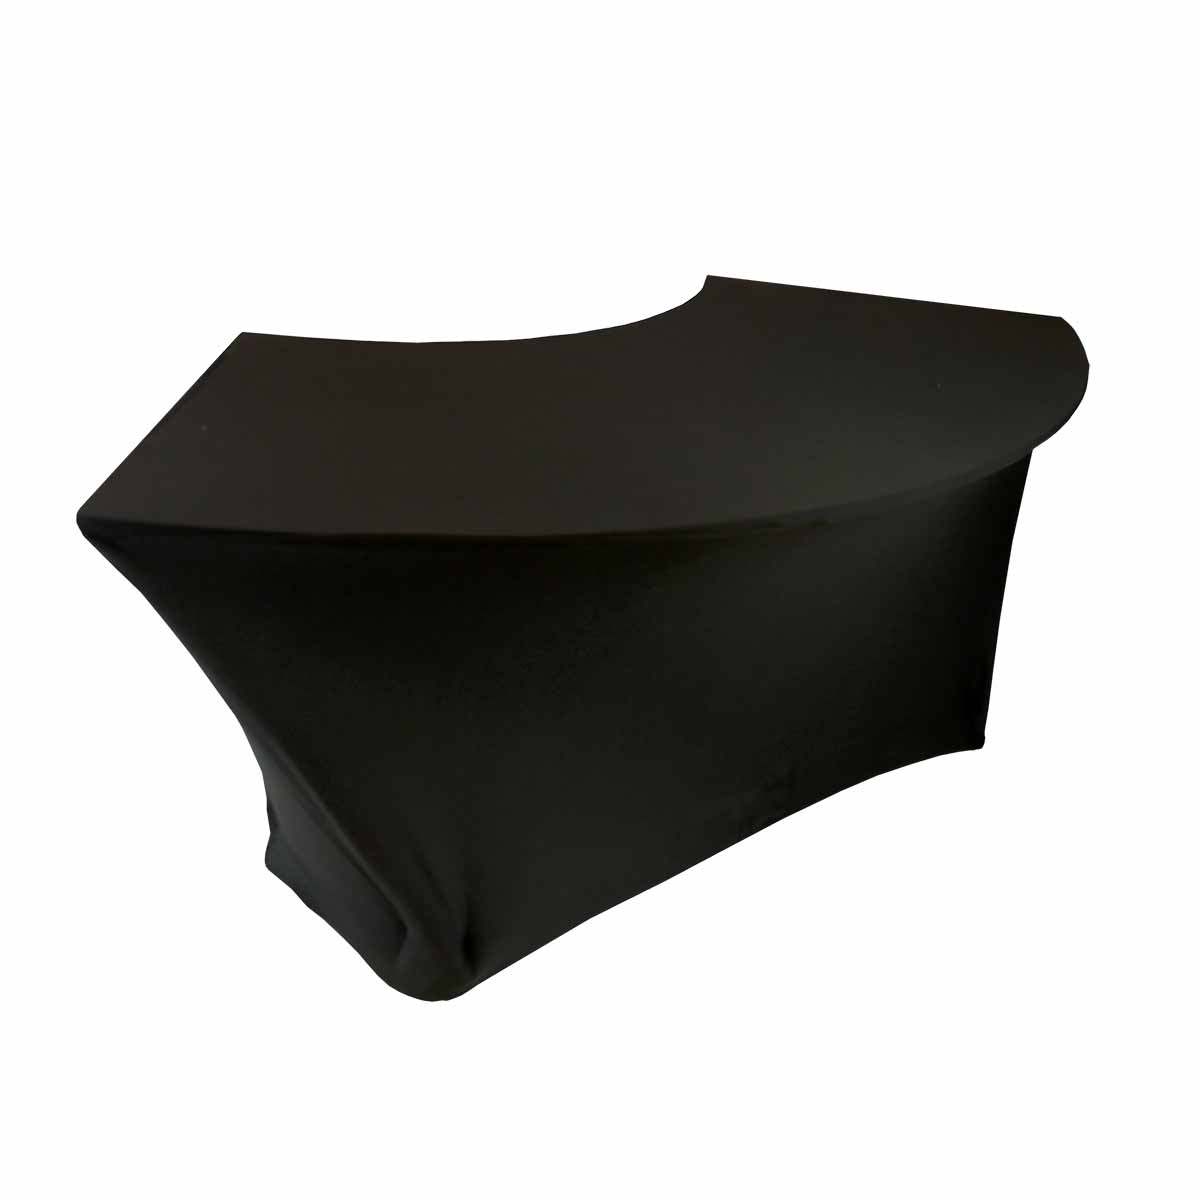 Serpentine Tablecover Spandex Black